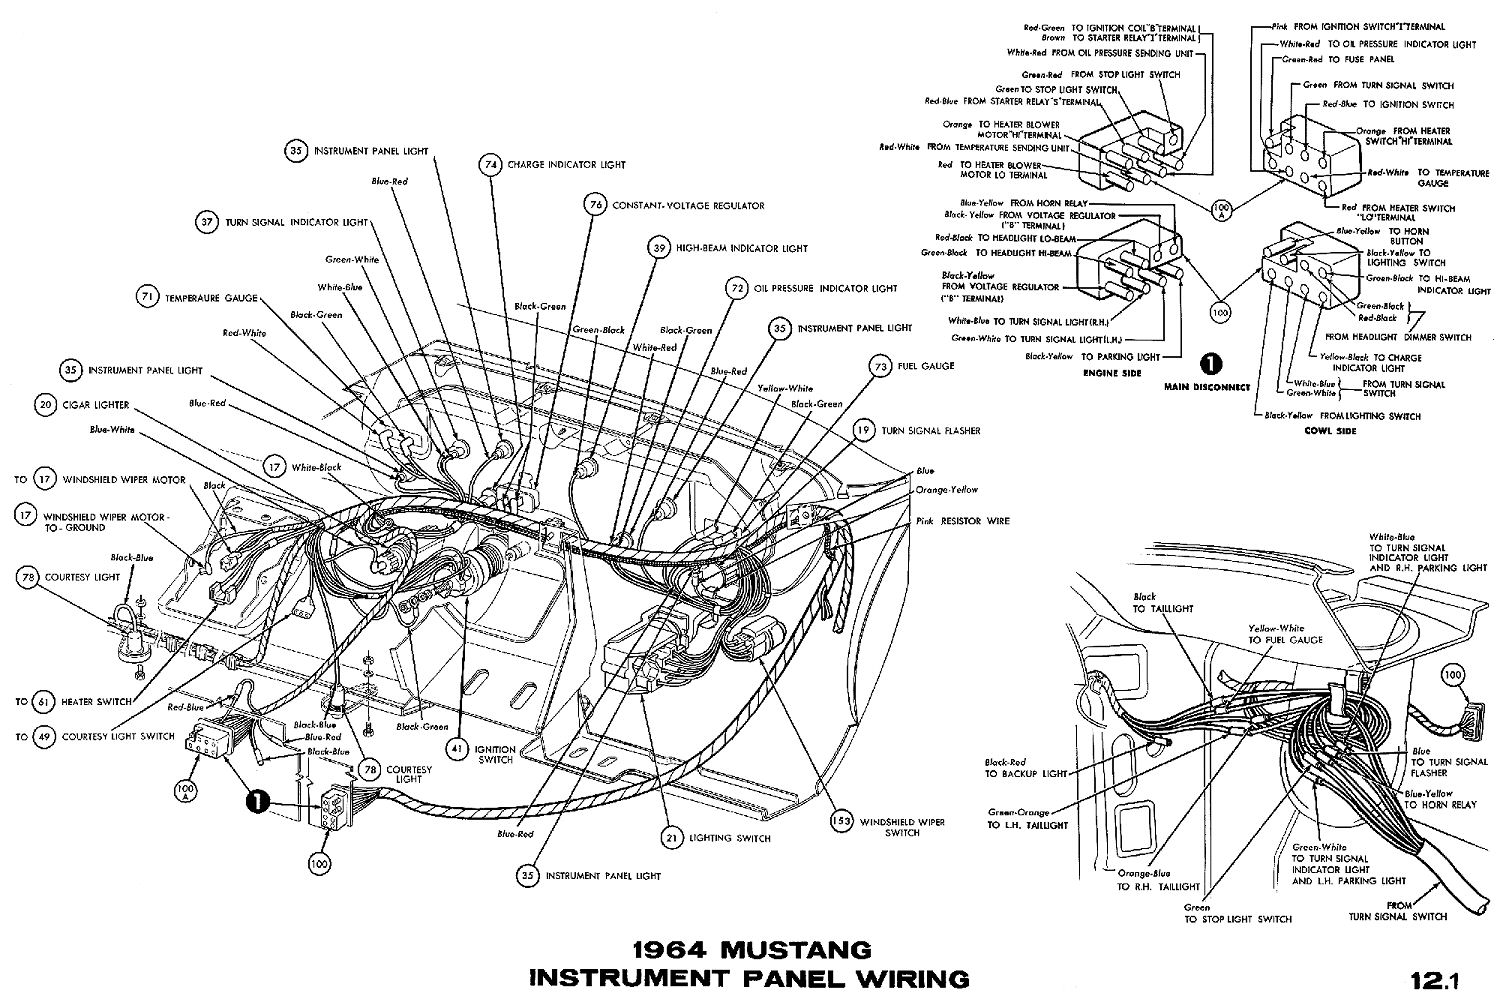 1964 Mustang Wiring Diagrams Average Joe Restoration Chevy Oil Pressure Sensor Switch Diagram Instrument Cluster Connections Wiper